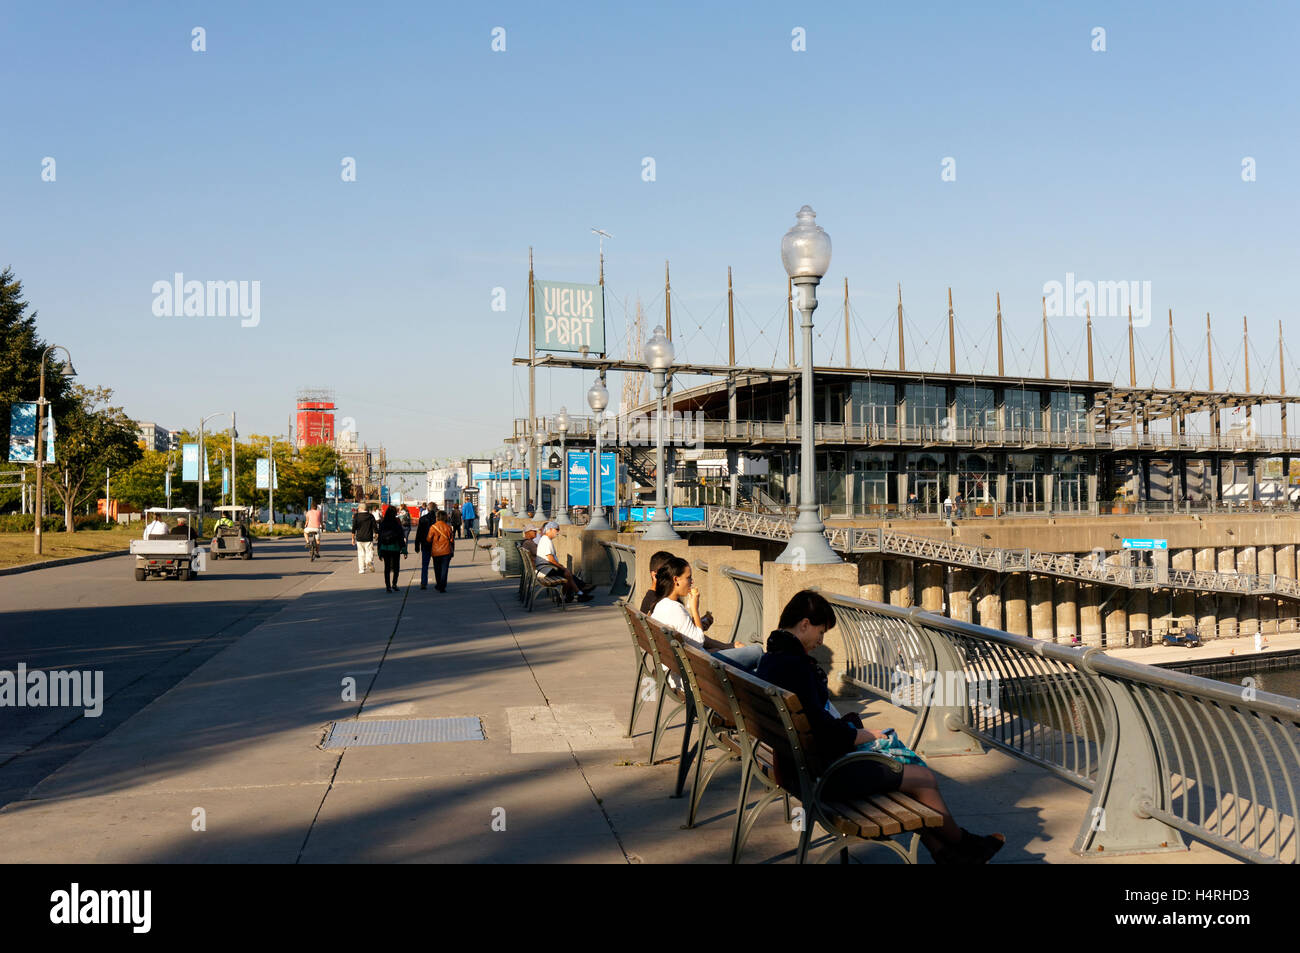 People on the Promenade des Artistes with Jacques Cartier Pavilion in back, Old Port of Montreal, Quebec, Canada Stock Photo